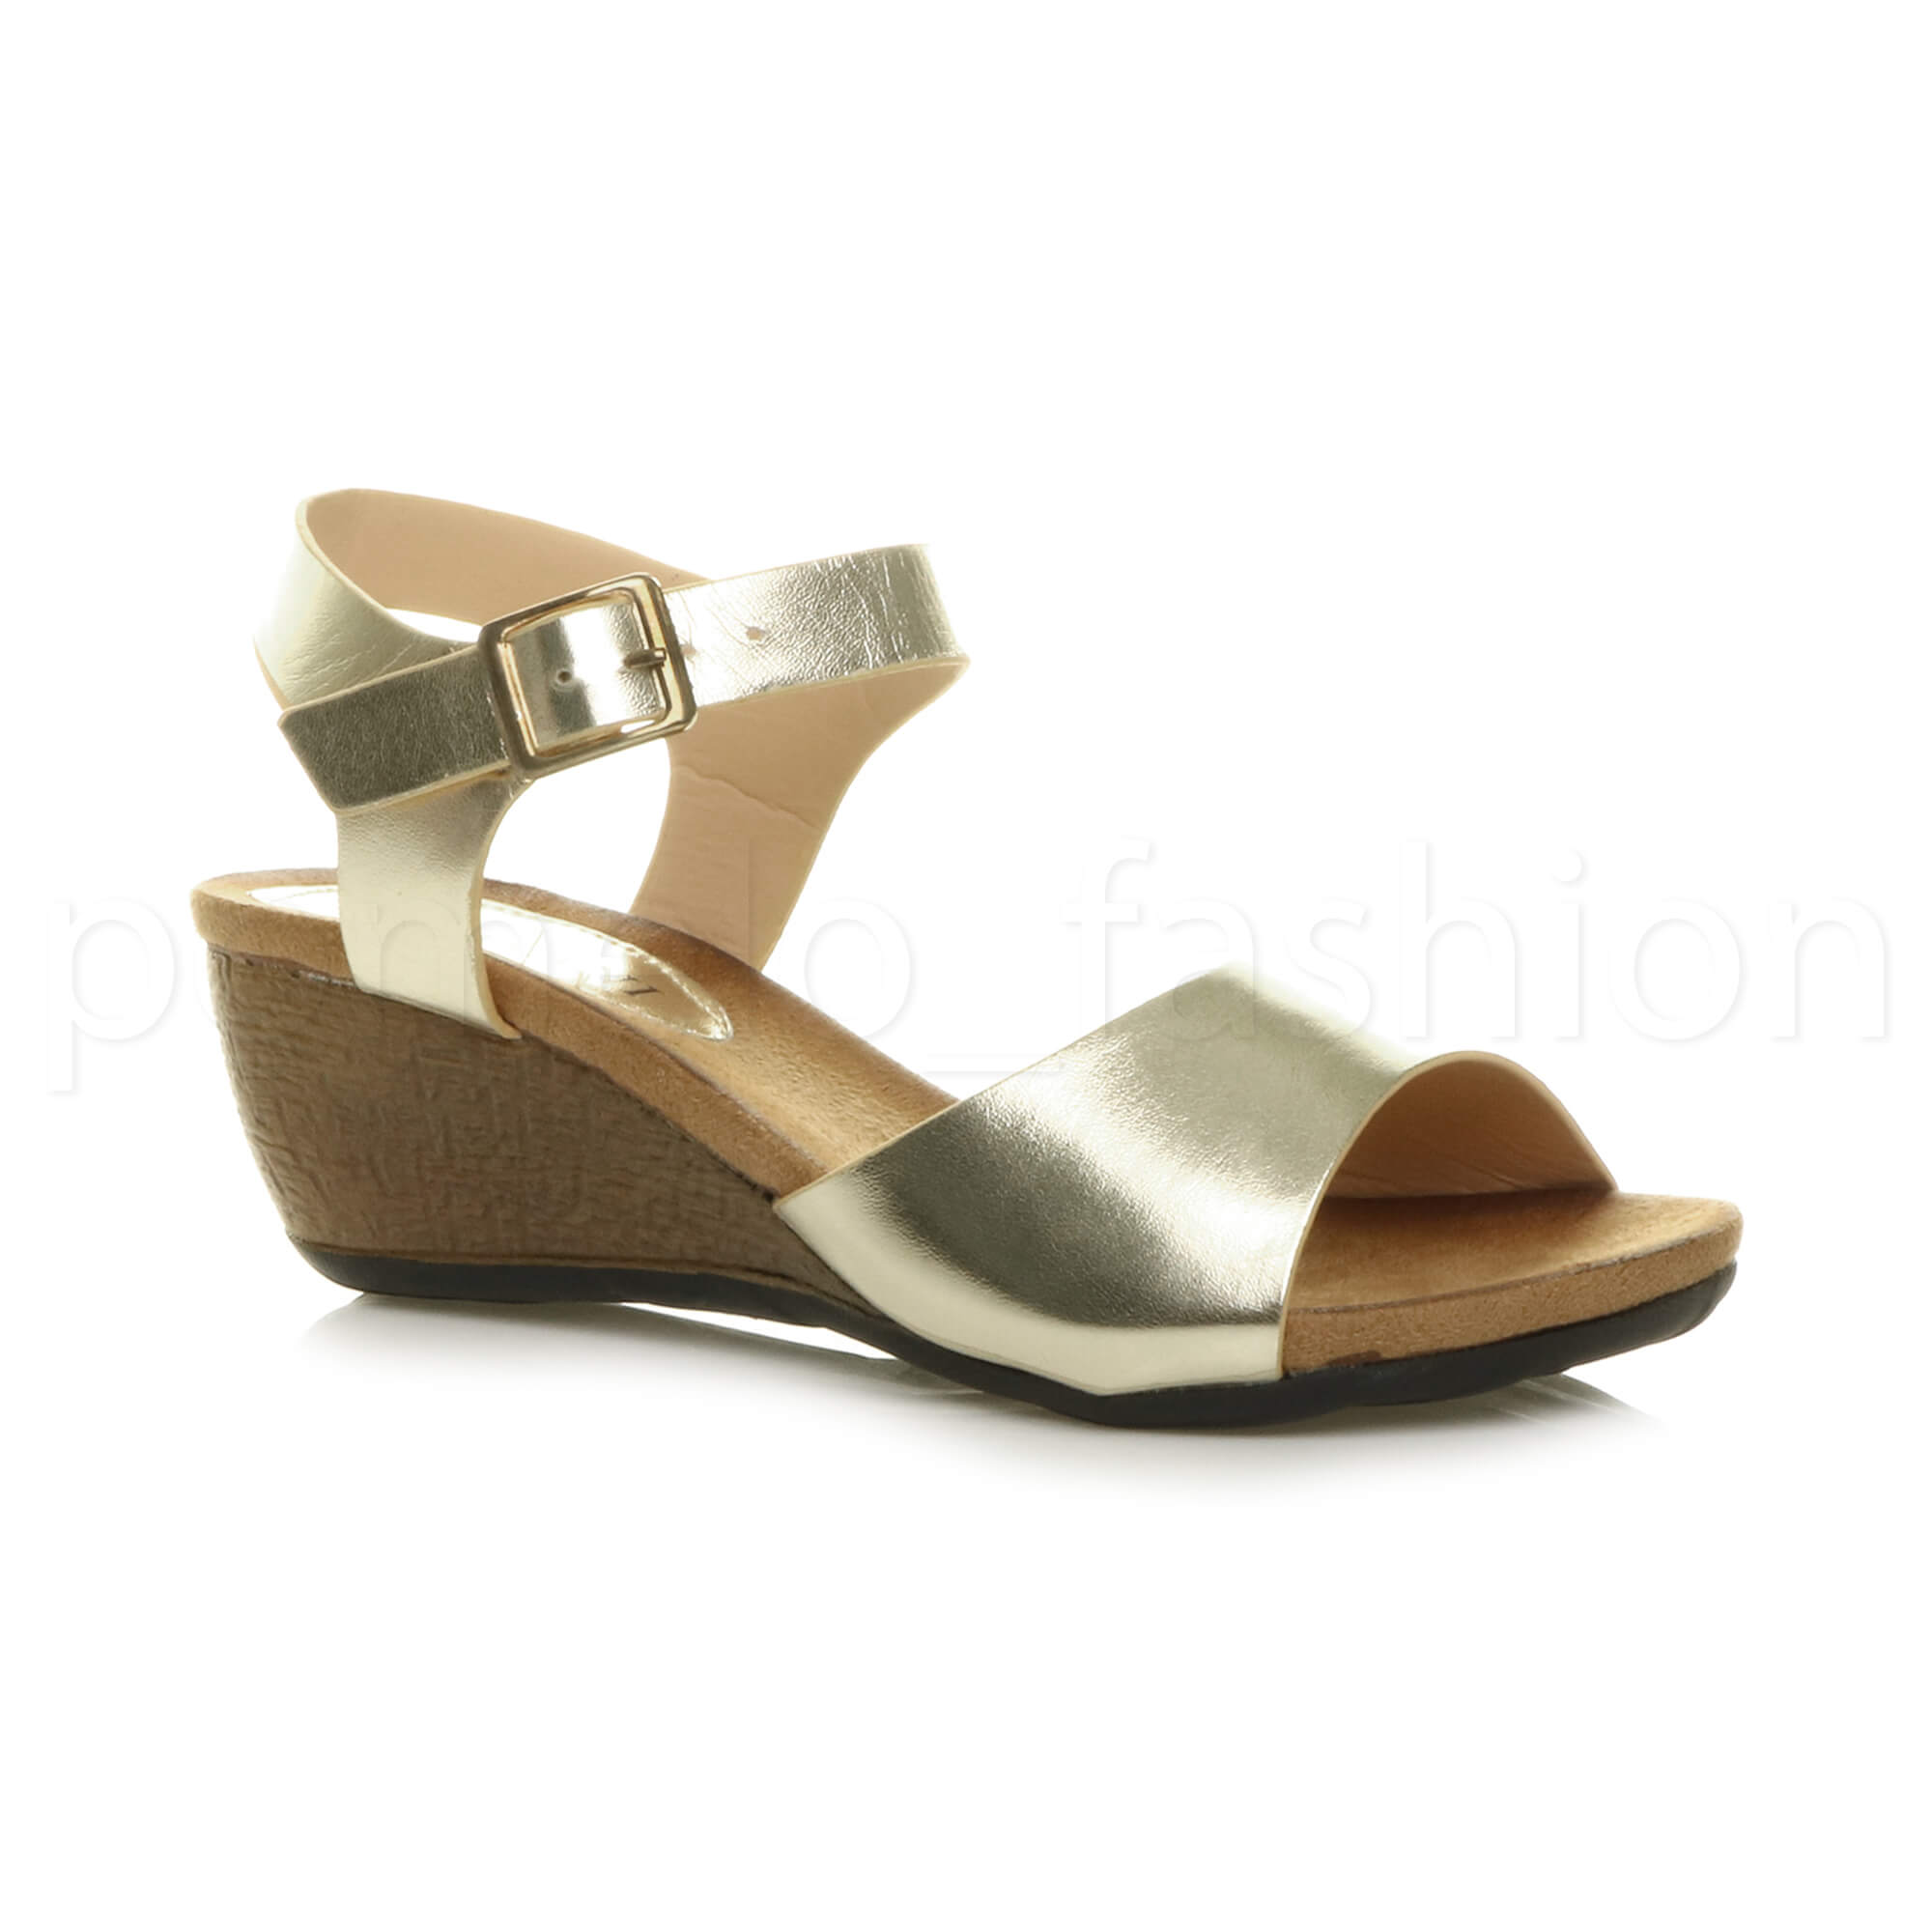 5bb5214bbbf8 Womens Ladies Platform Mid Heel Wedge Work Smart PEEP Toe Shoes Sandals  Size UK 4   EU 37   US 6 Gold. About this product. Picture 1 of 6  Picture  2 of 6 ...